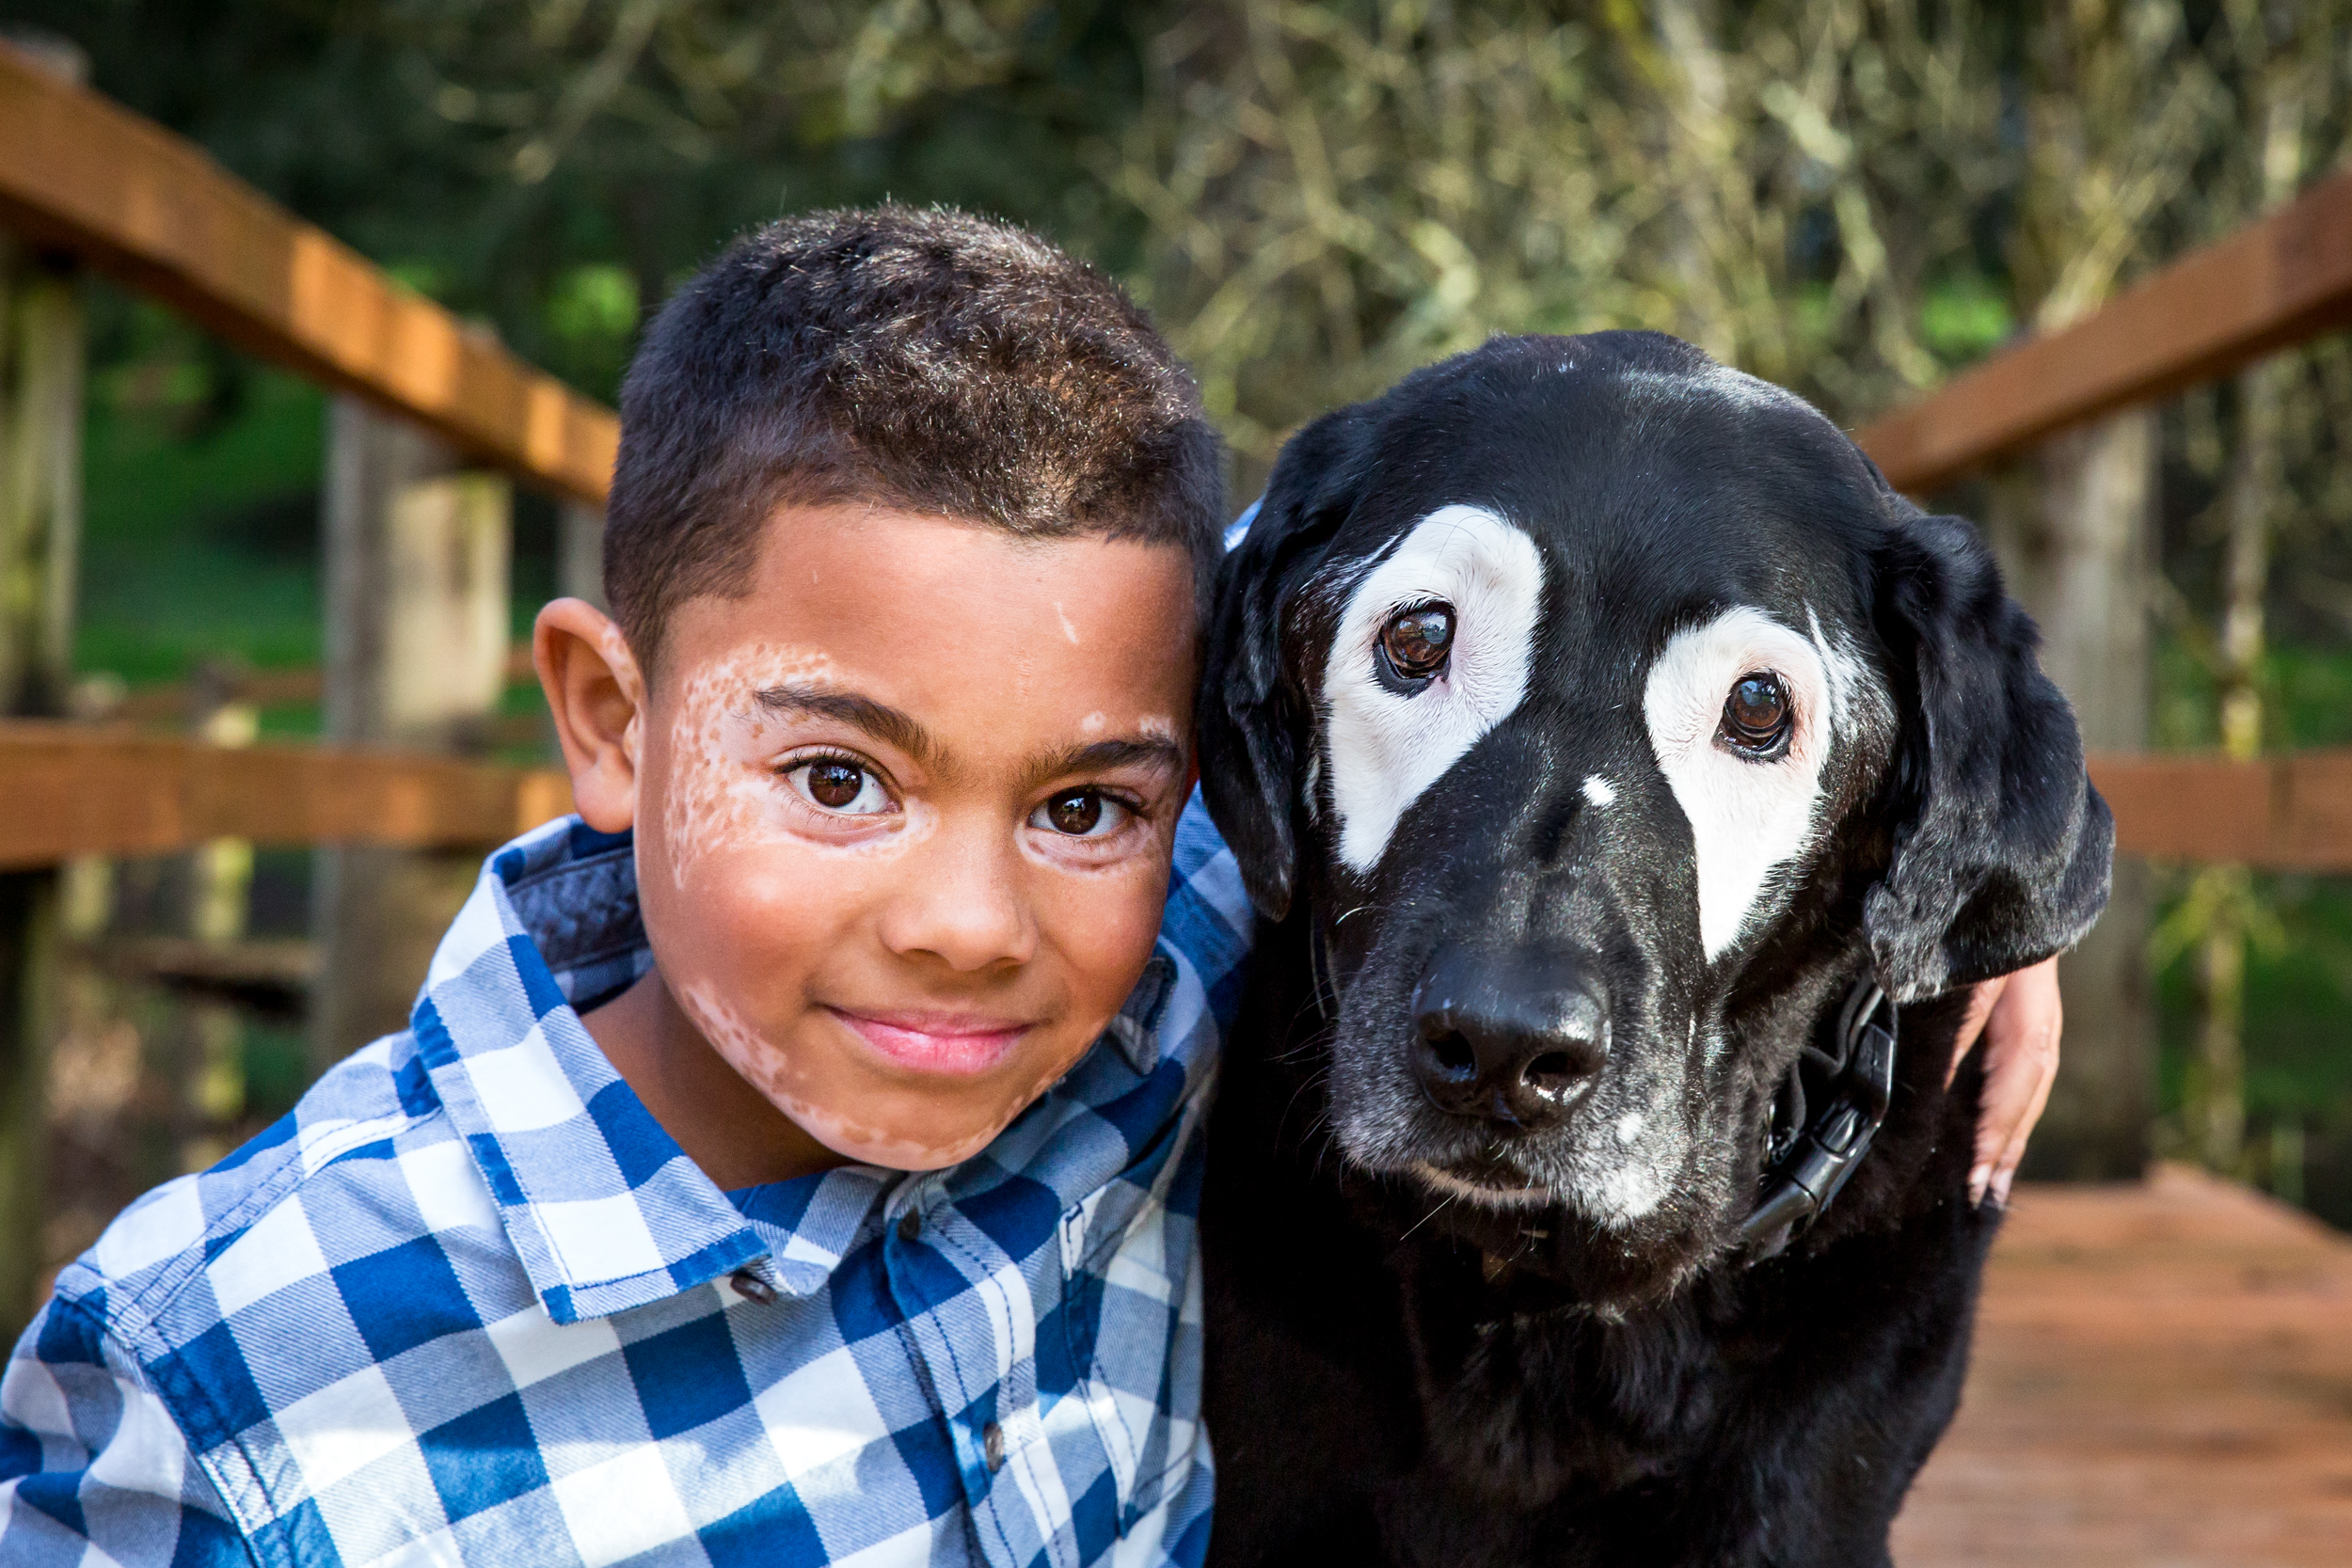 Carter Blanchard, of Arkansas, is pictured here with his new friend Rowdy. Both were diagnosed with Vitiligo, a rare skin disorder.